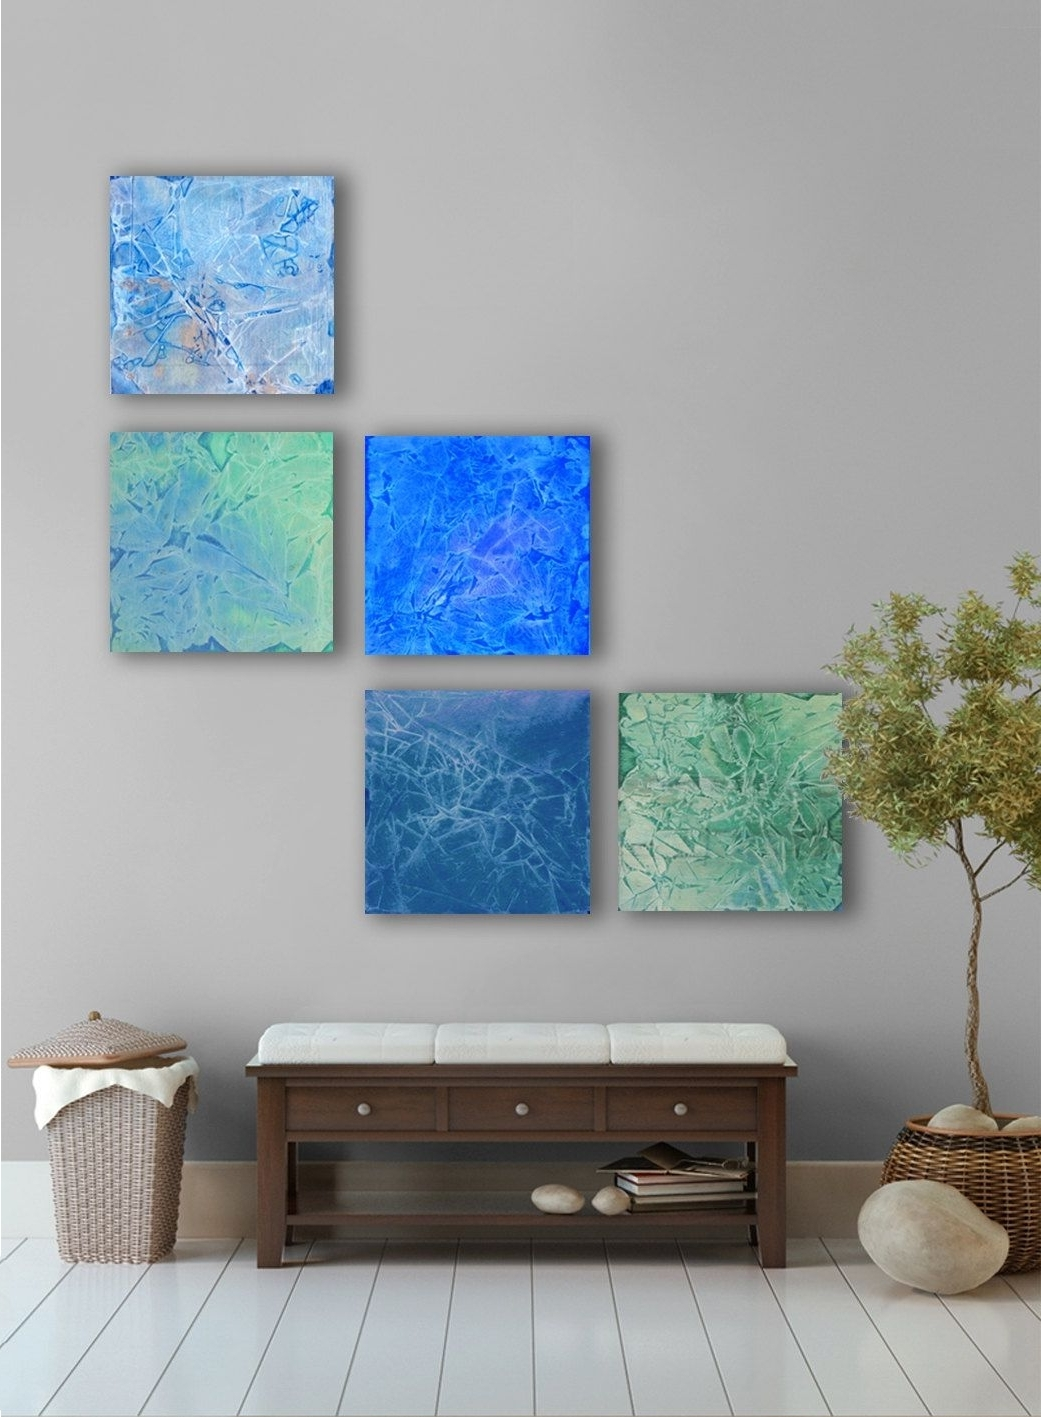 Most Recent April Rain Abstract Painting, 5 Square Custom Abstract Wall Art In Large Abstract Wall Art (View 12 of 15)